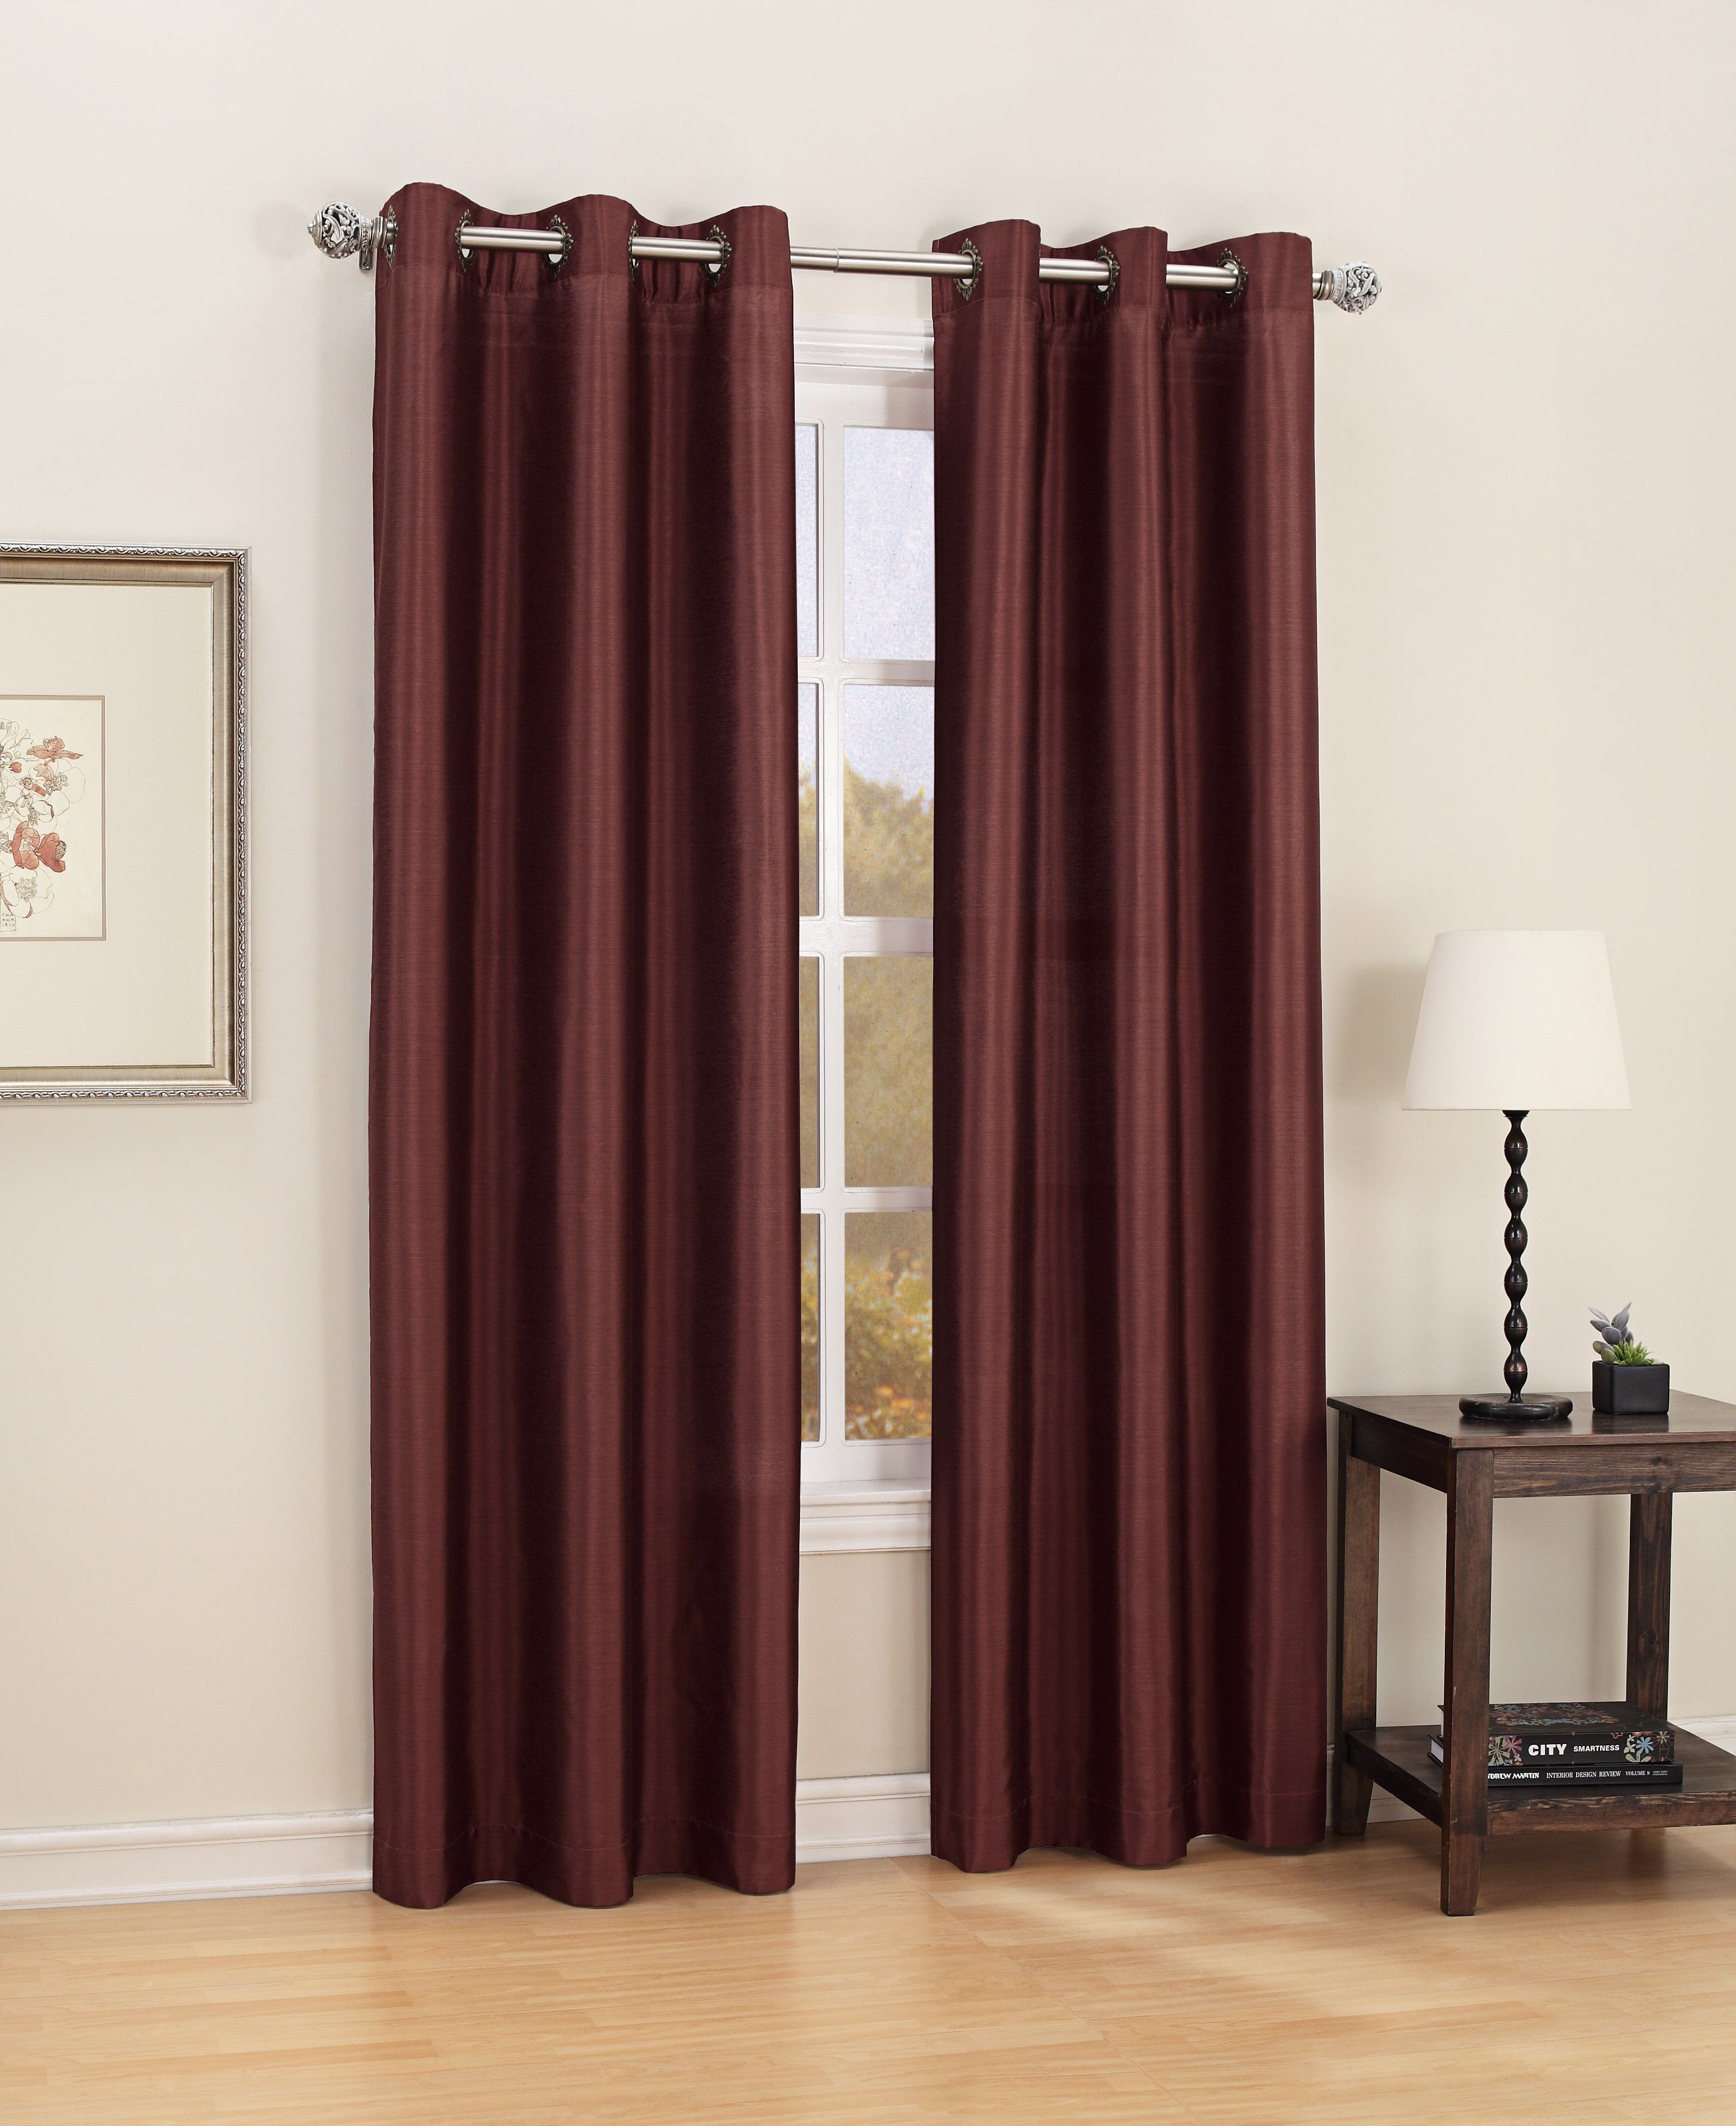 outlet high walmart drapes for treatments curtains window designs and windows end different discount ideas threshold two curtain story size treatment full cu short modern i of awning drapery target kitchen